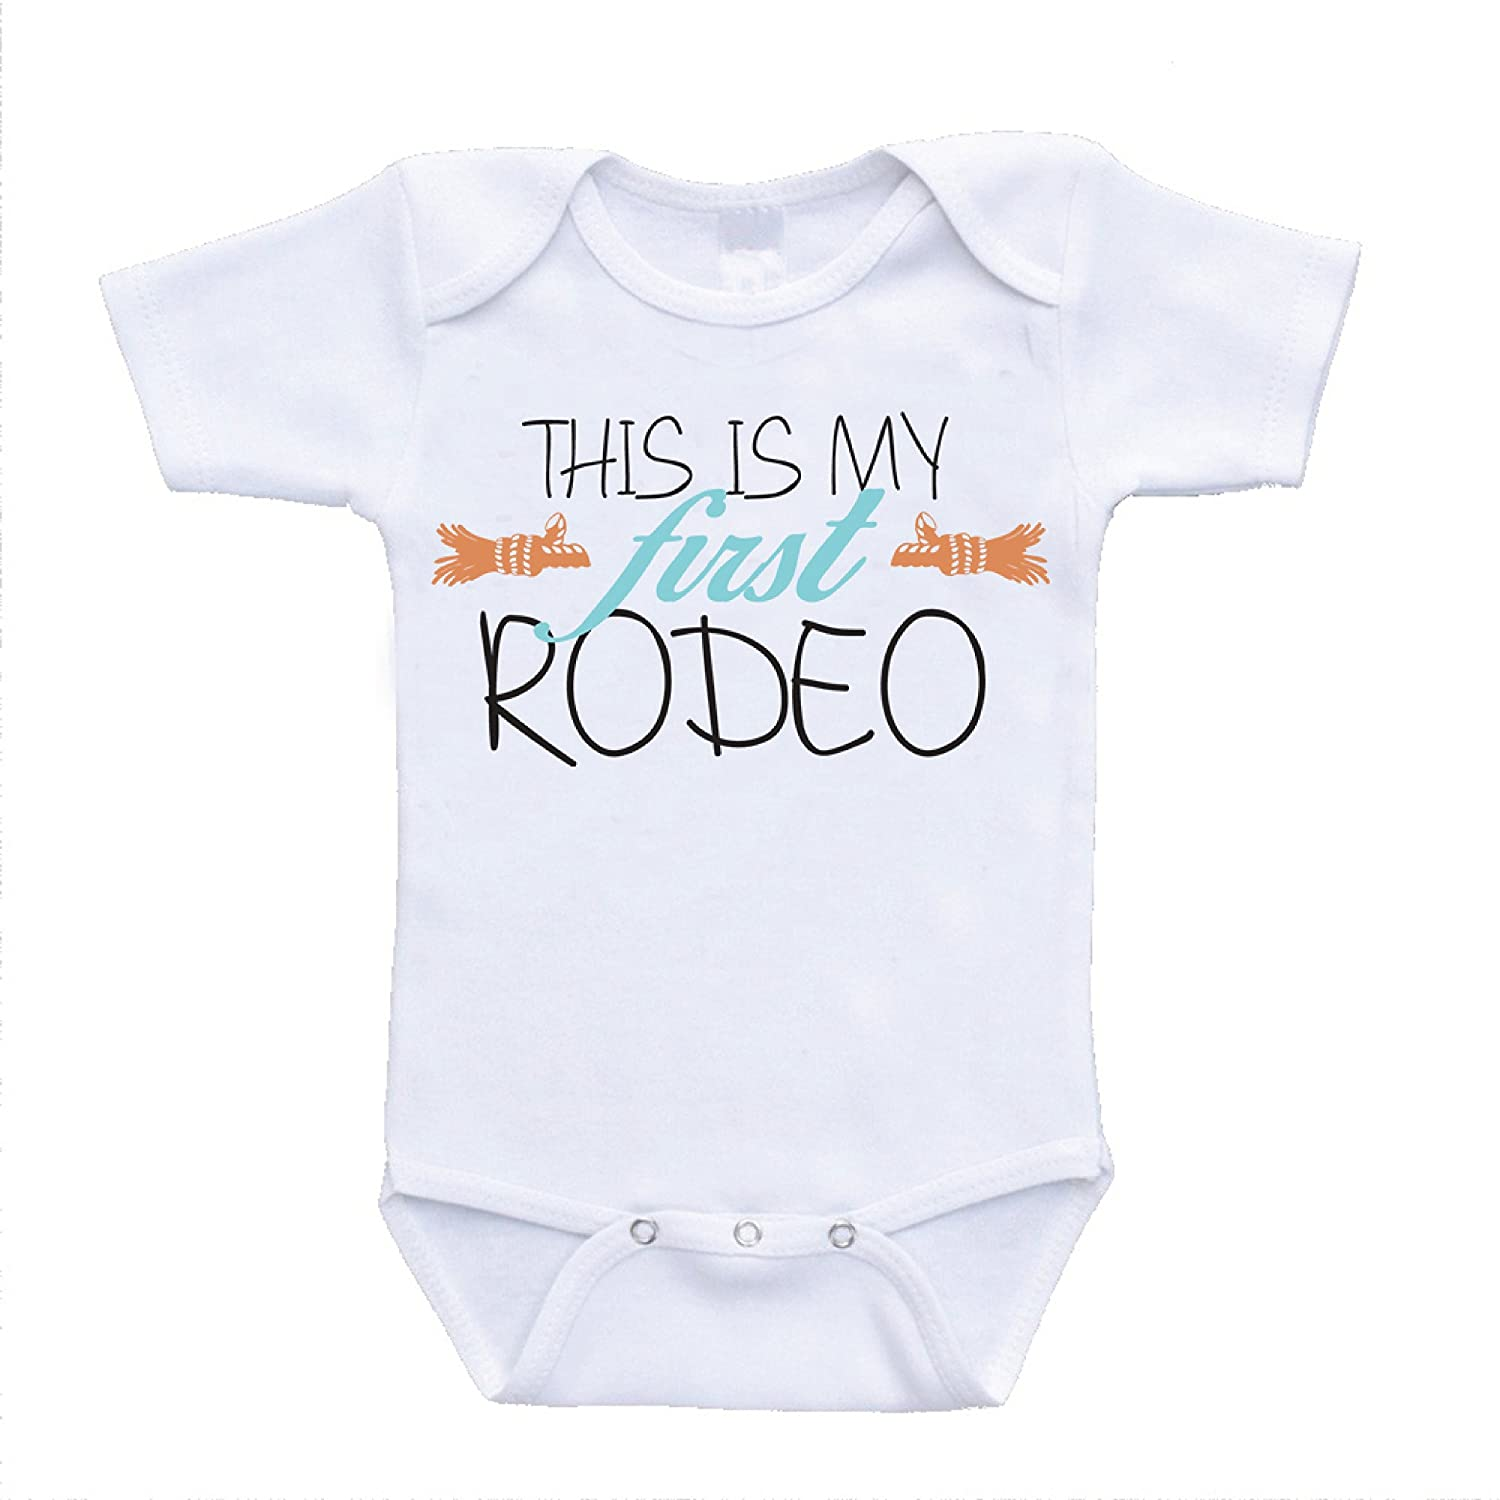 48940629b Amazon.com : This Is My First Rodeo funny baby onesies cute rompers one  piece bodysuits cheap affordable infant clothing (6-9 Months) (newborn(0-3  Months)) ...